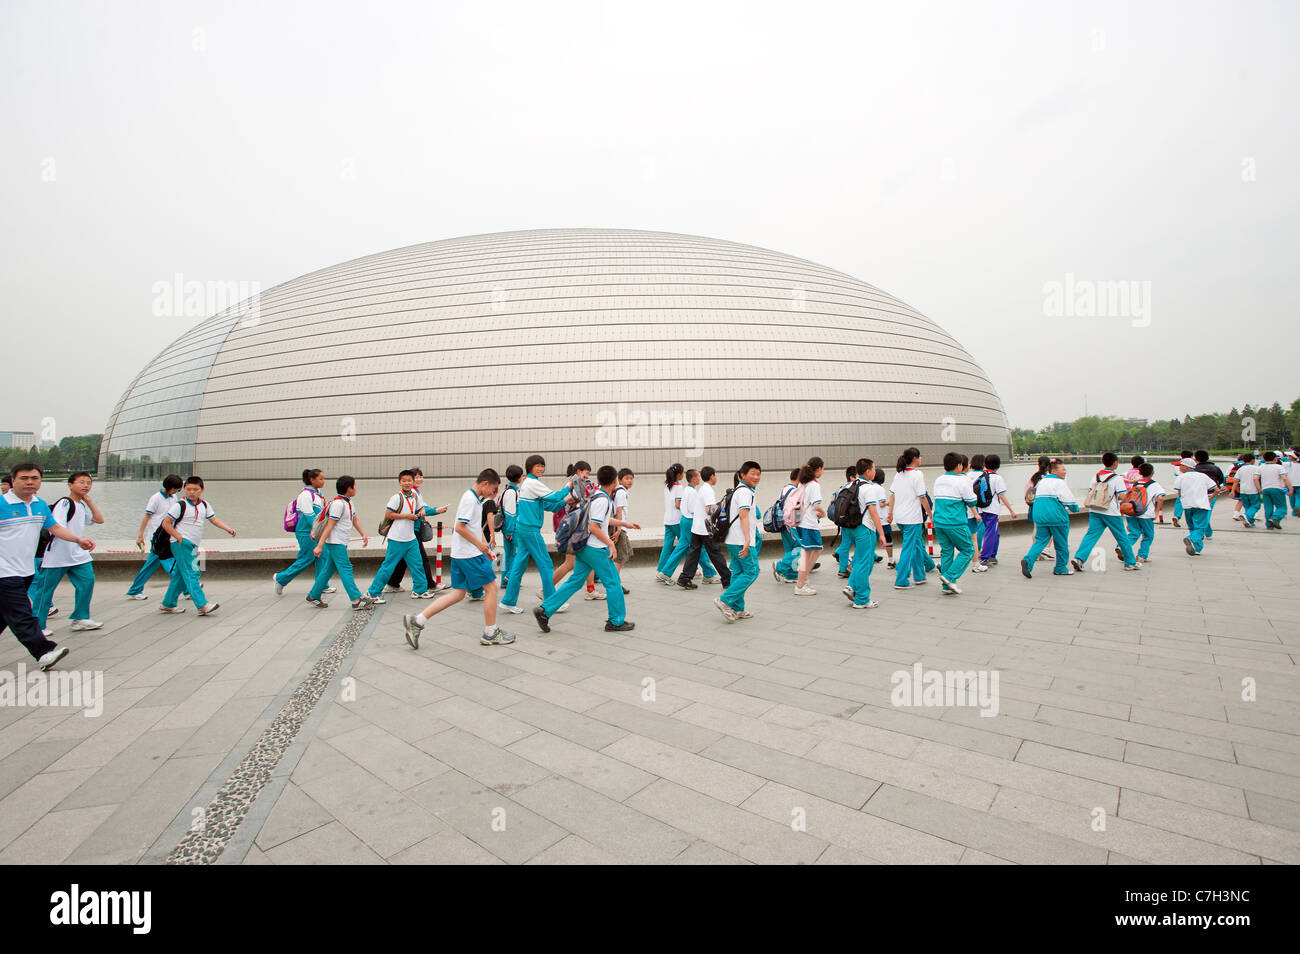 National Centre for the Performing Arts building the egg Peking beijing capital of the People's Republic of China Stock Photo